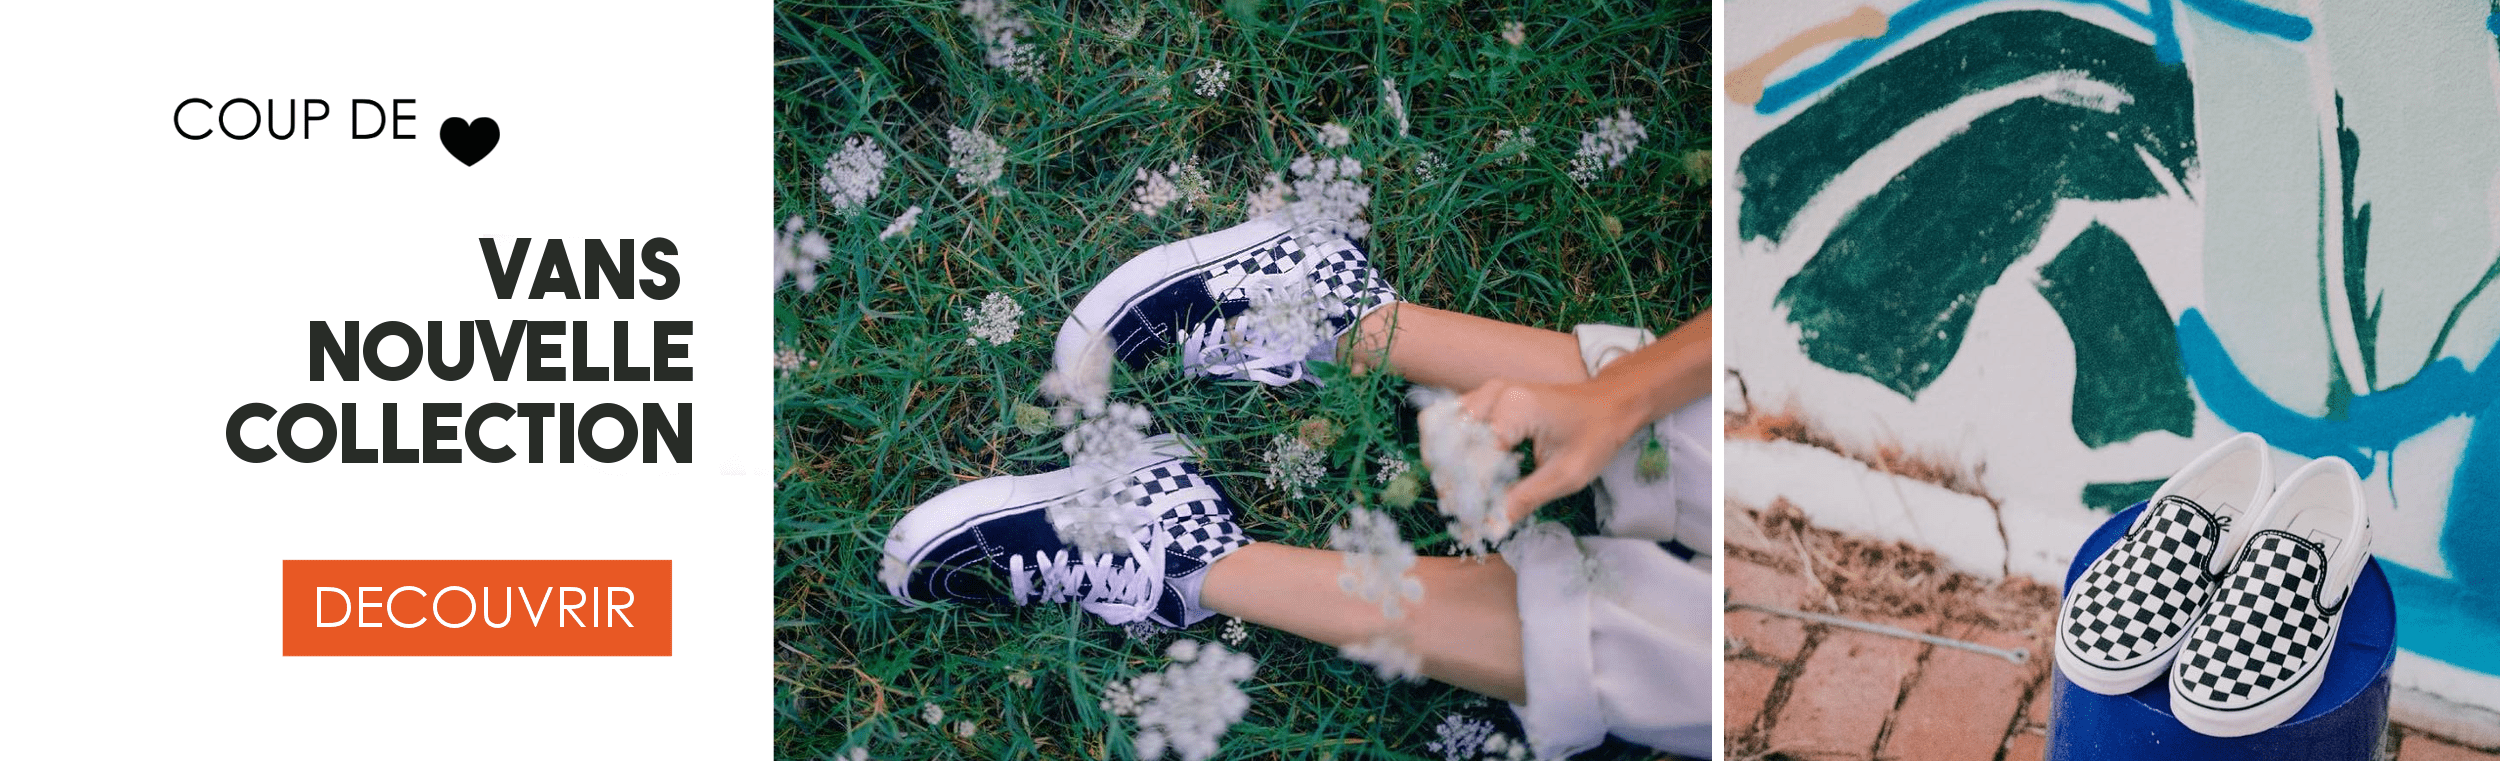 Collection été 2019 Vans